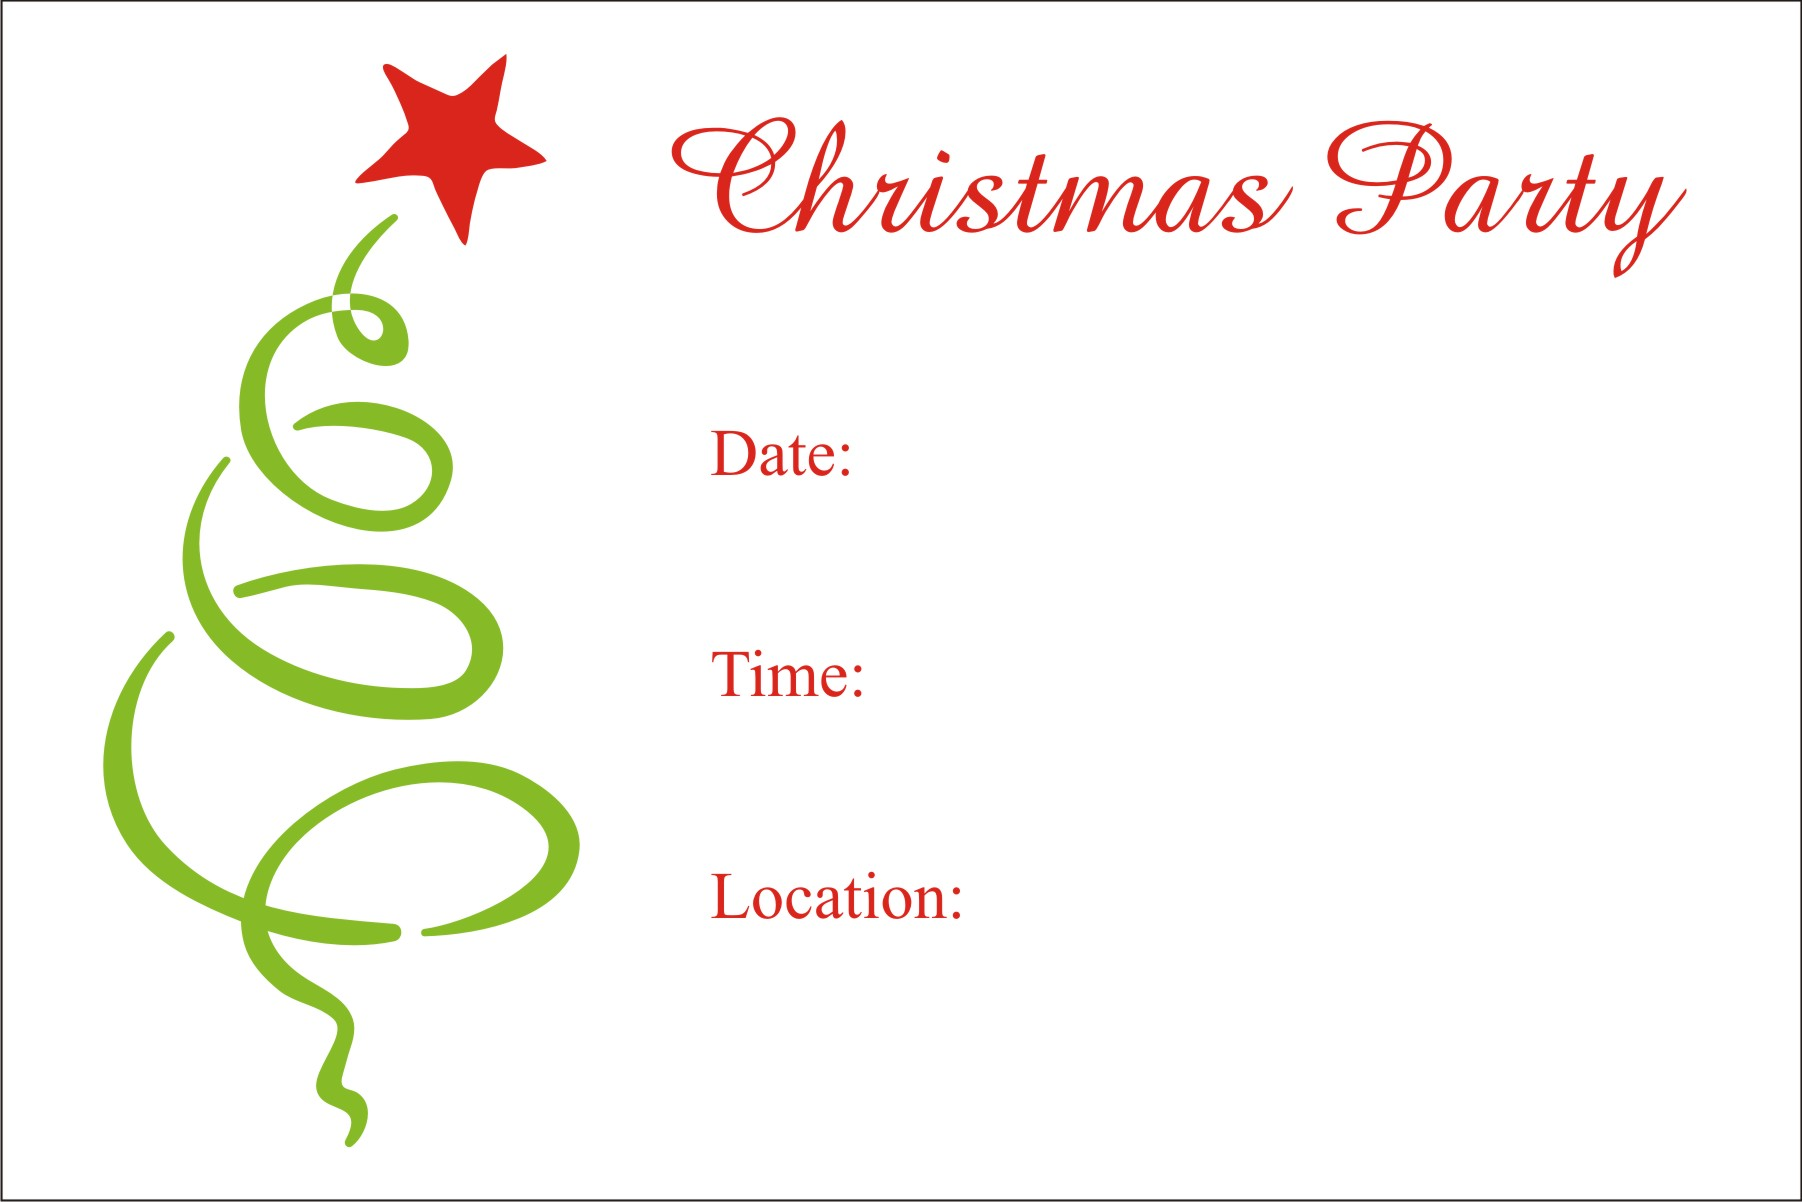 xmas party invites info christmas party printable holiday invitation personalized